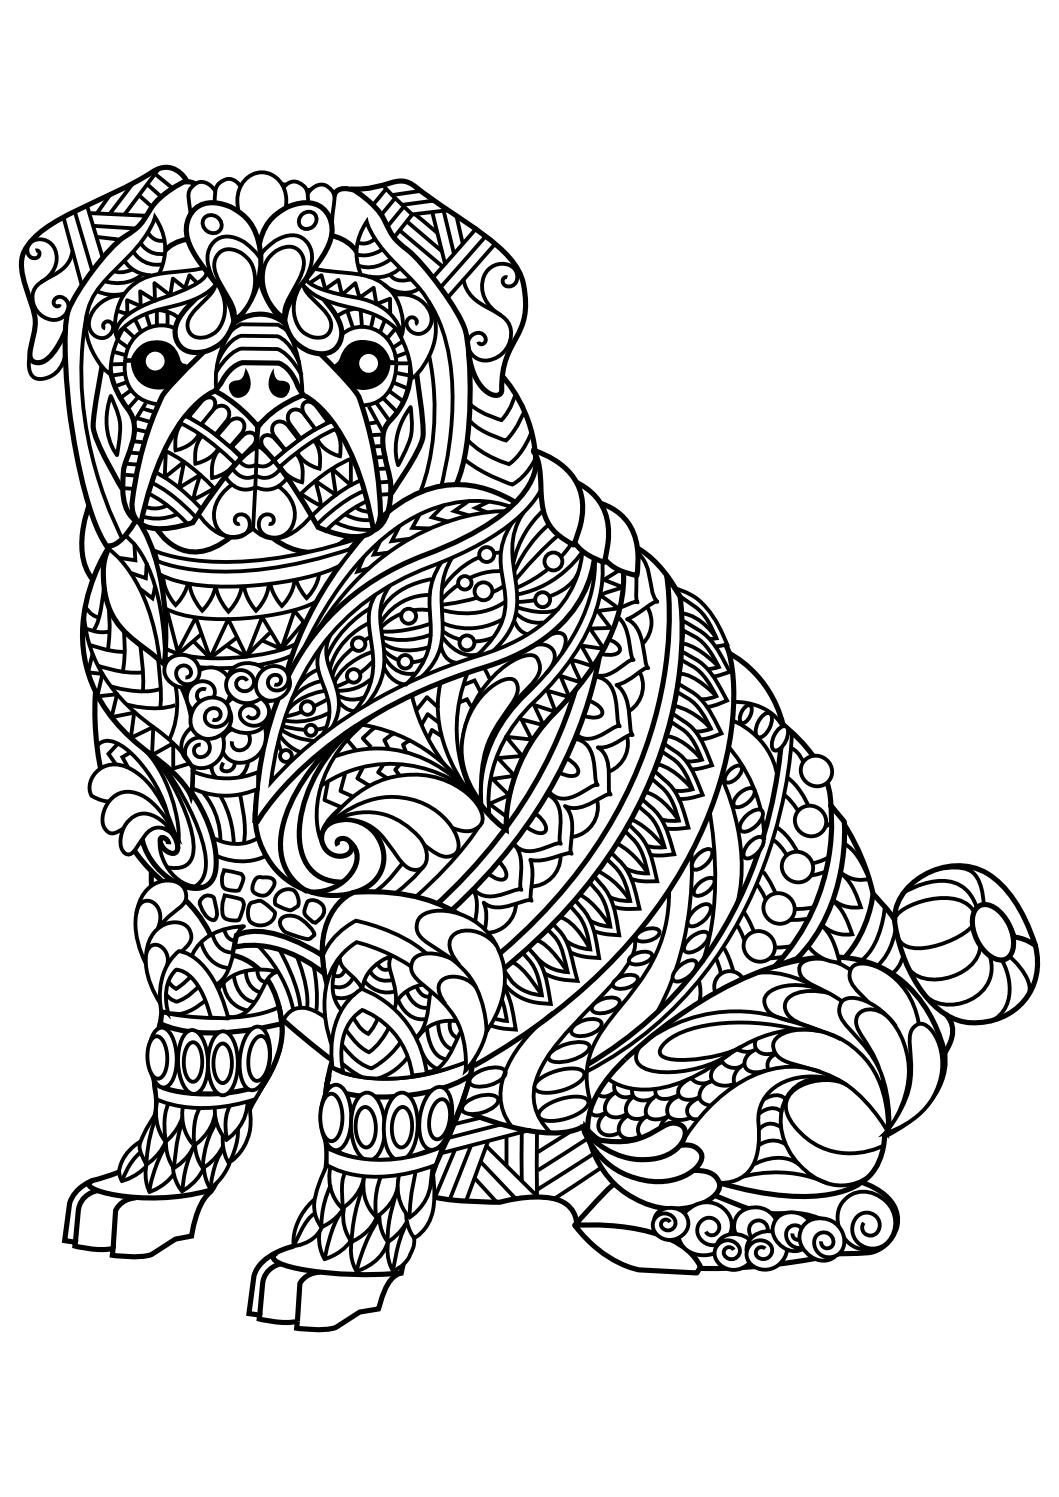 Animal Coloring Pages Pdf - Animals Horse Dog Page